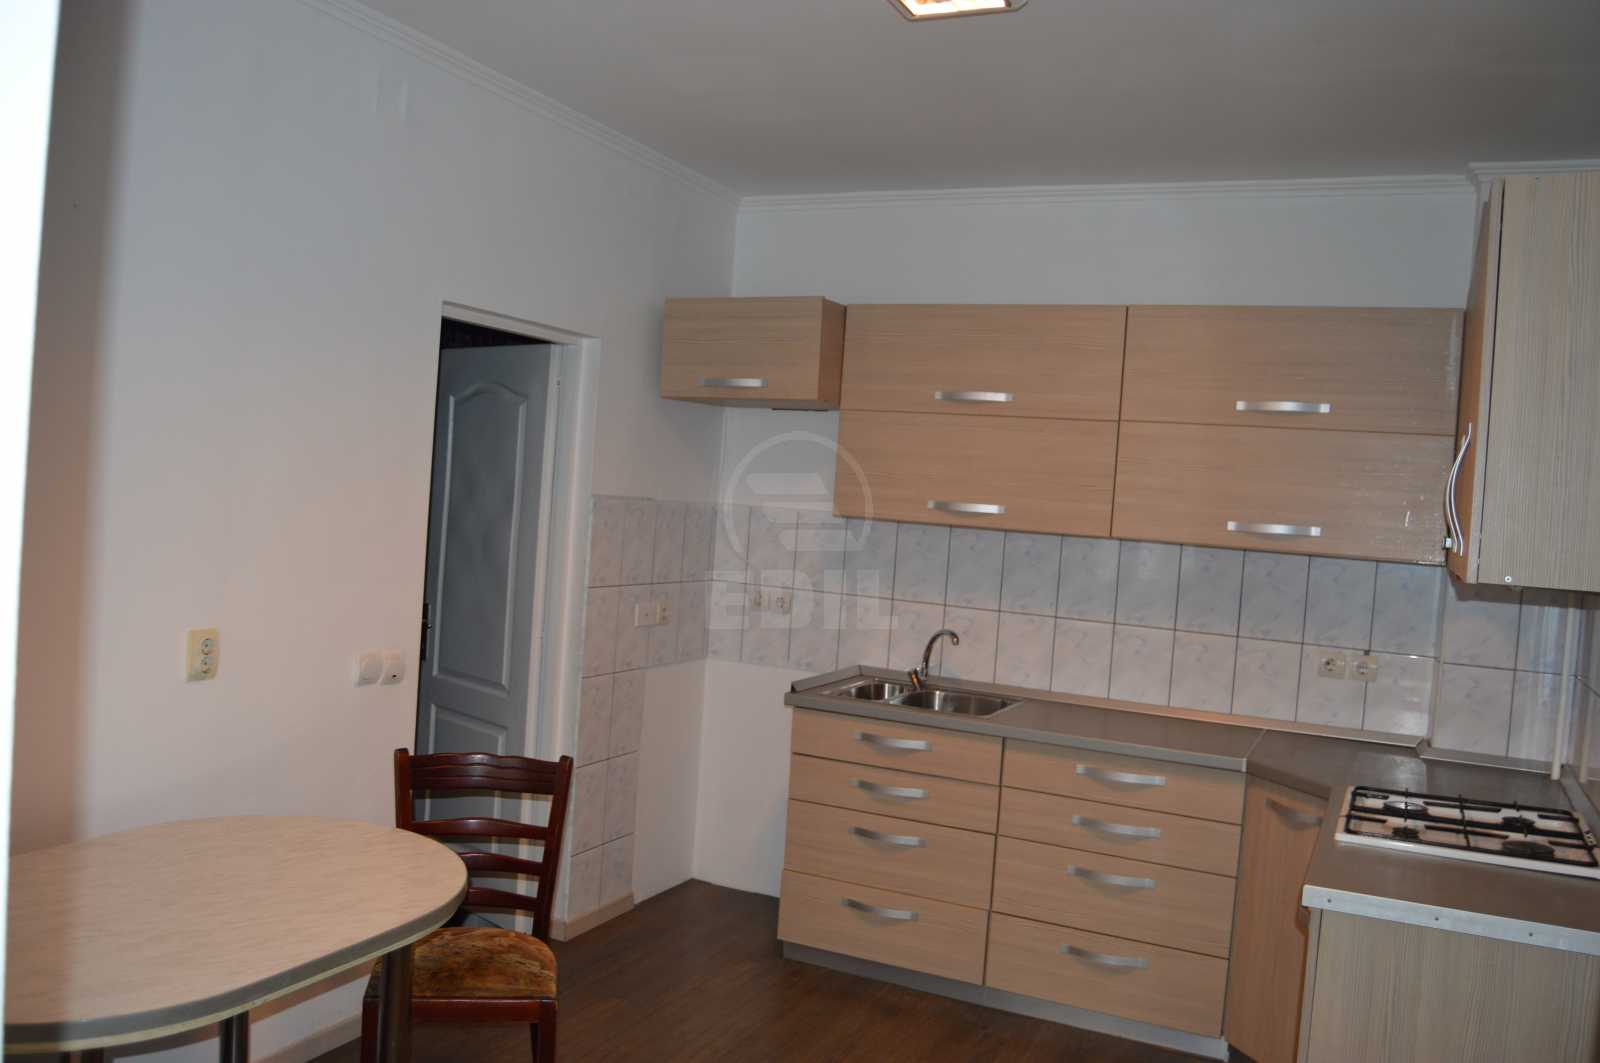 House for sale 3 rooms, CACJ284246-12